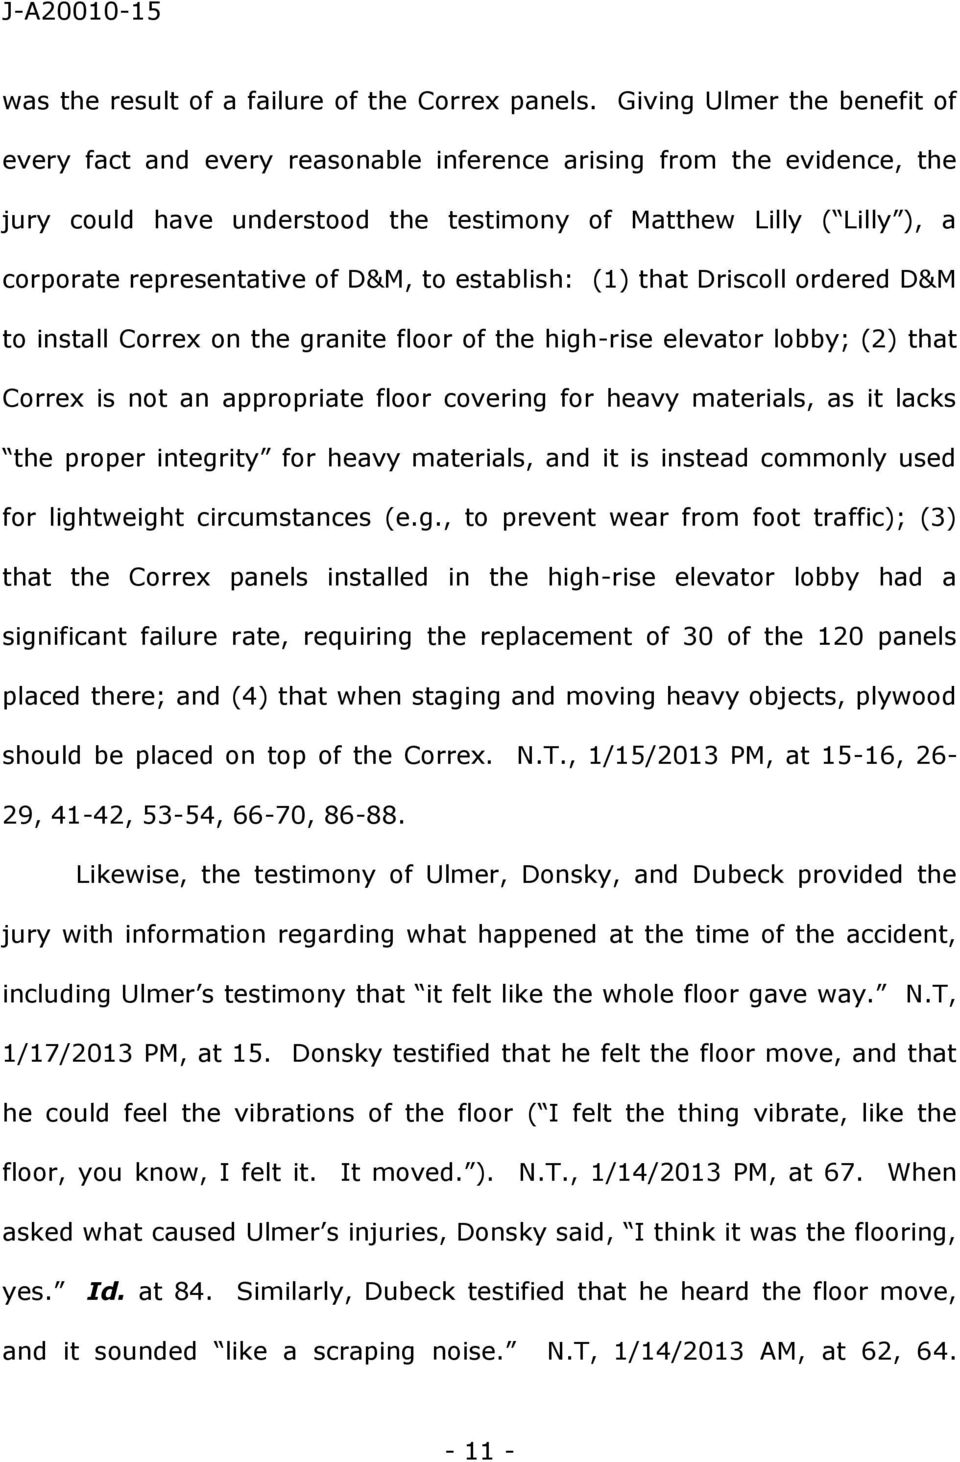 D&M, to establish: (1) that Driscoll ordered D&M to install Correx on the granite floor of the high-rise elevator lobby; (2) that Correx is not an appropriate floor covering for heavy materials, as